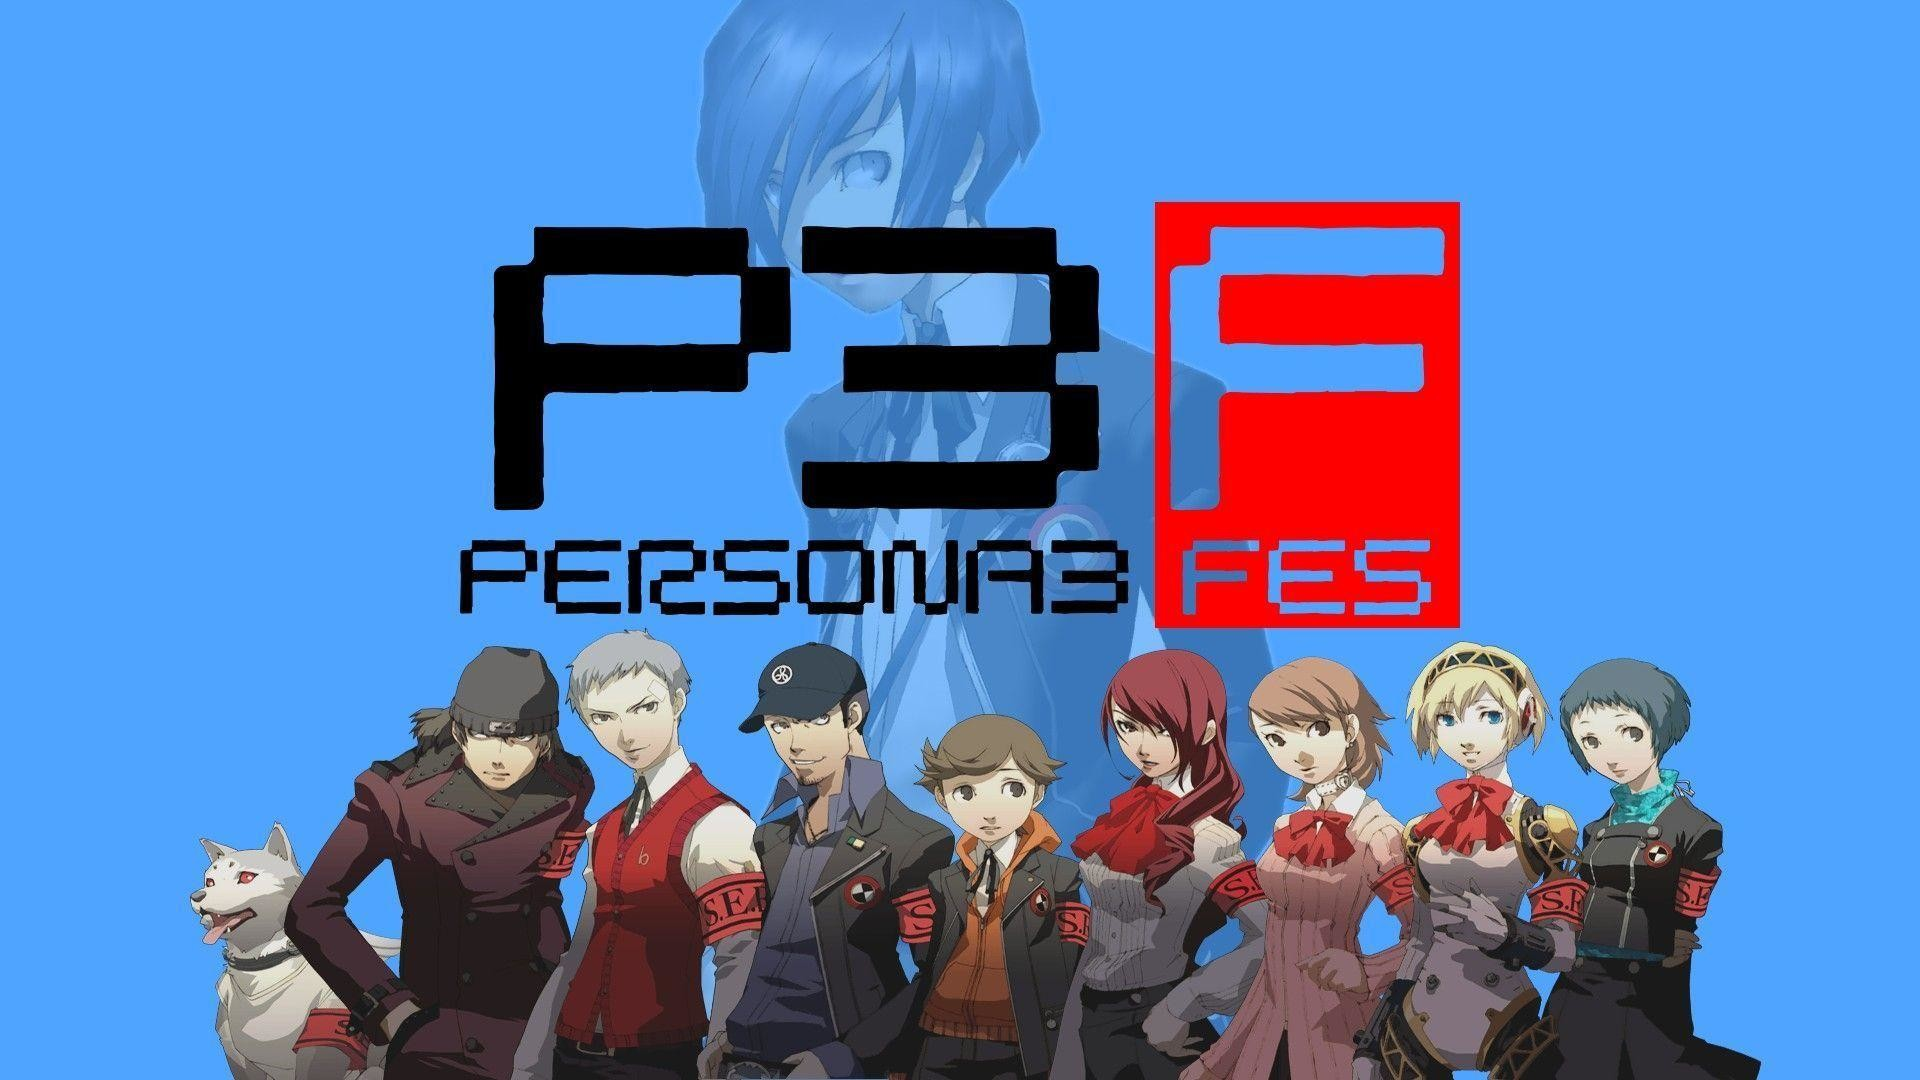 1920x1080 Images For Persona 3 Fes Wallpaper